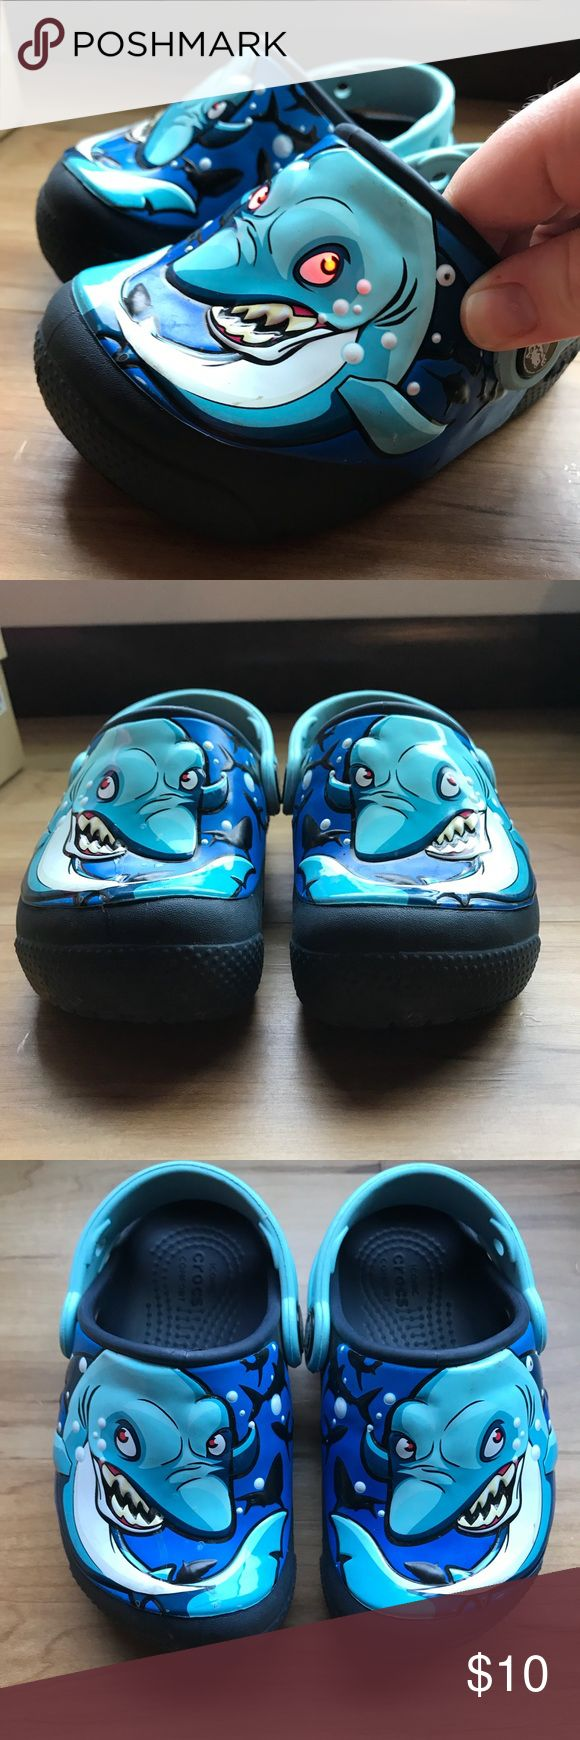 """Crocs """"light up"""" shark eye toddler close toe SZ 7 These were hands down my son's favorite shoes! Blue and vibrantly colored sharks have light up eyes when they step. These are so cute on!   Feel free to bundle these with my other size 7 toddler boys shoes and I will quote a deal! CROCS Shoes"""